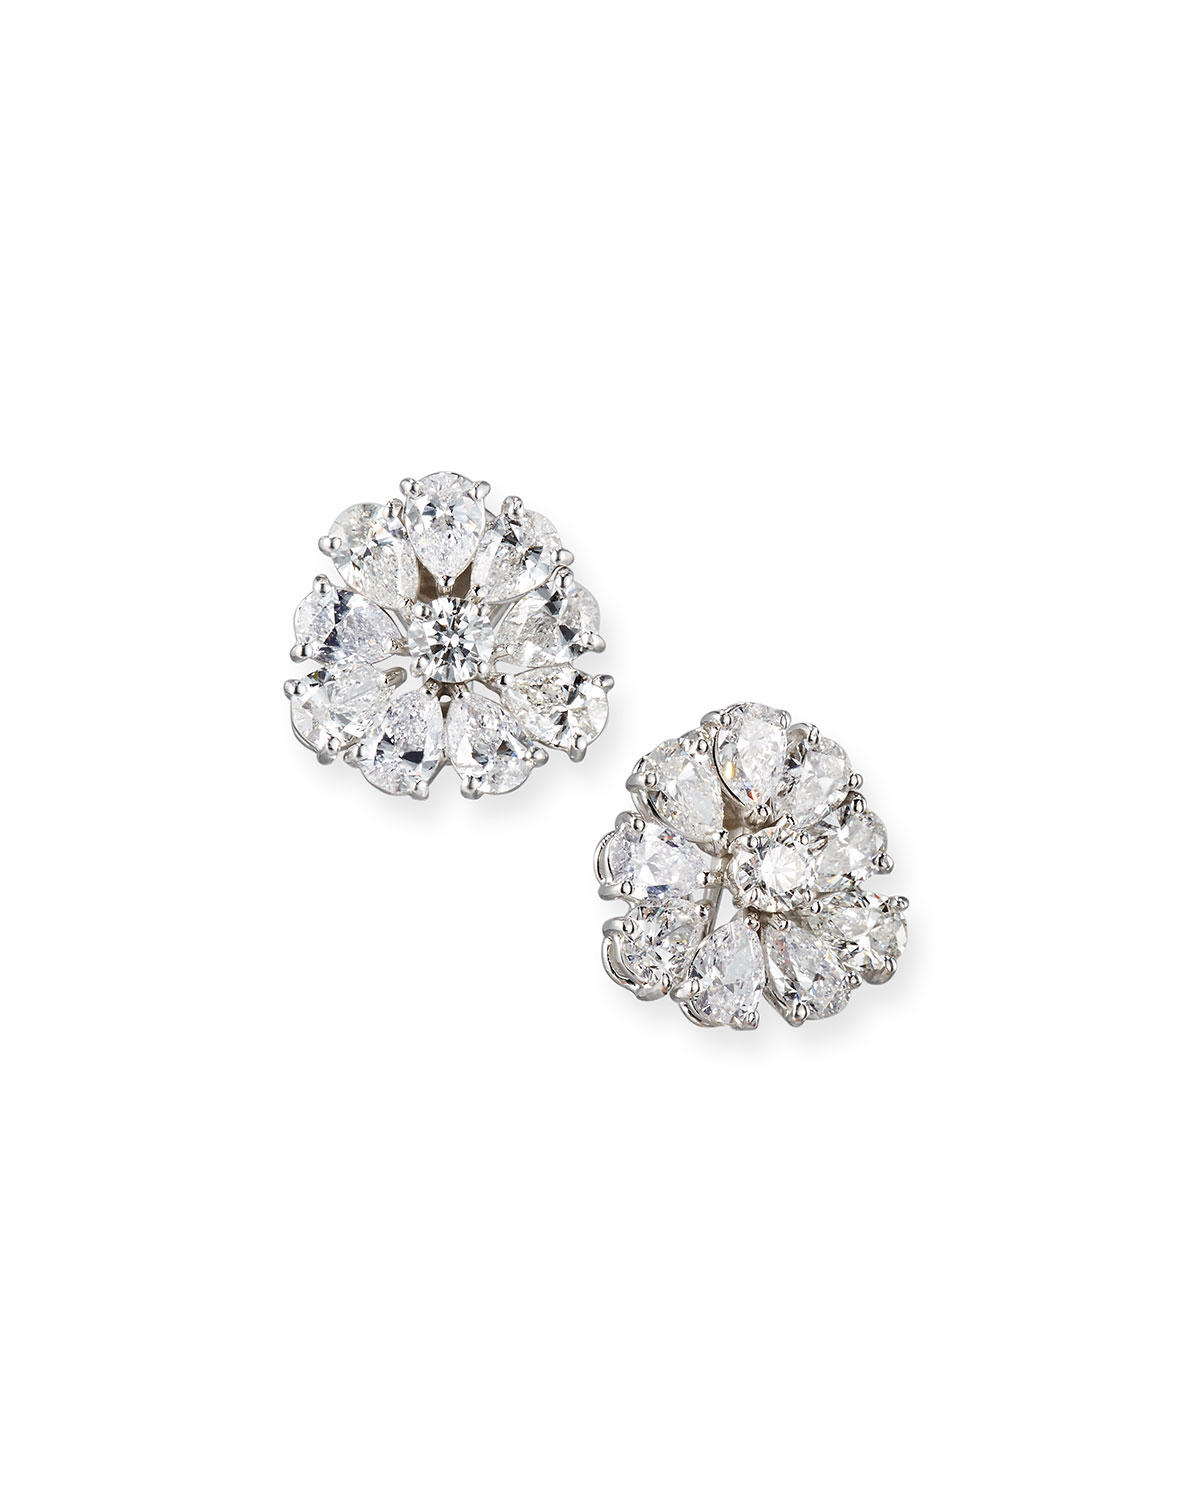 N-M JEWELRY SHOP Pear-Shaped Diamond Cluster Earrings on COOLS